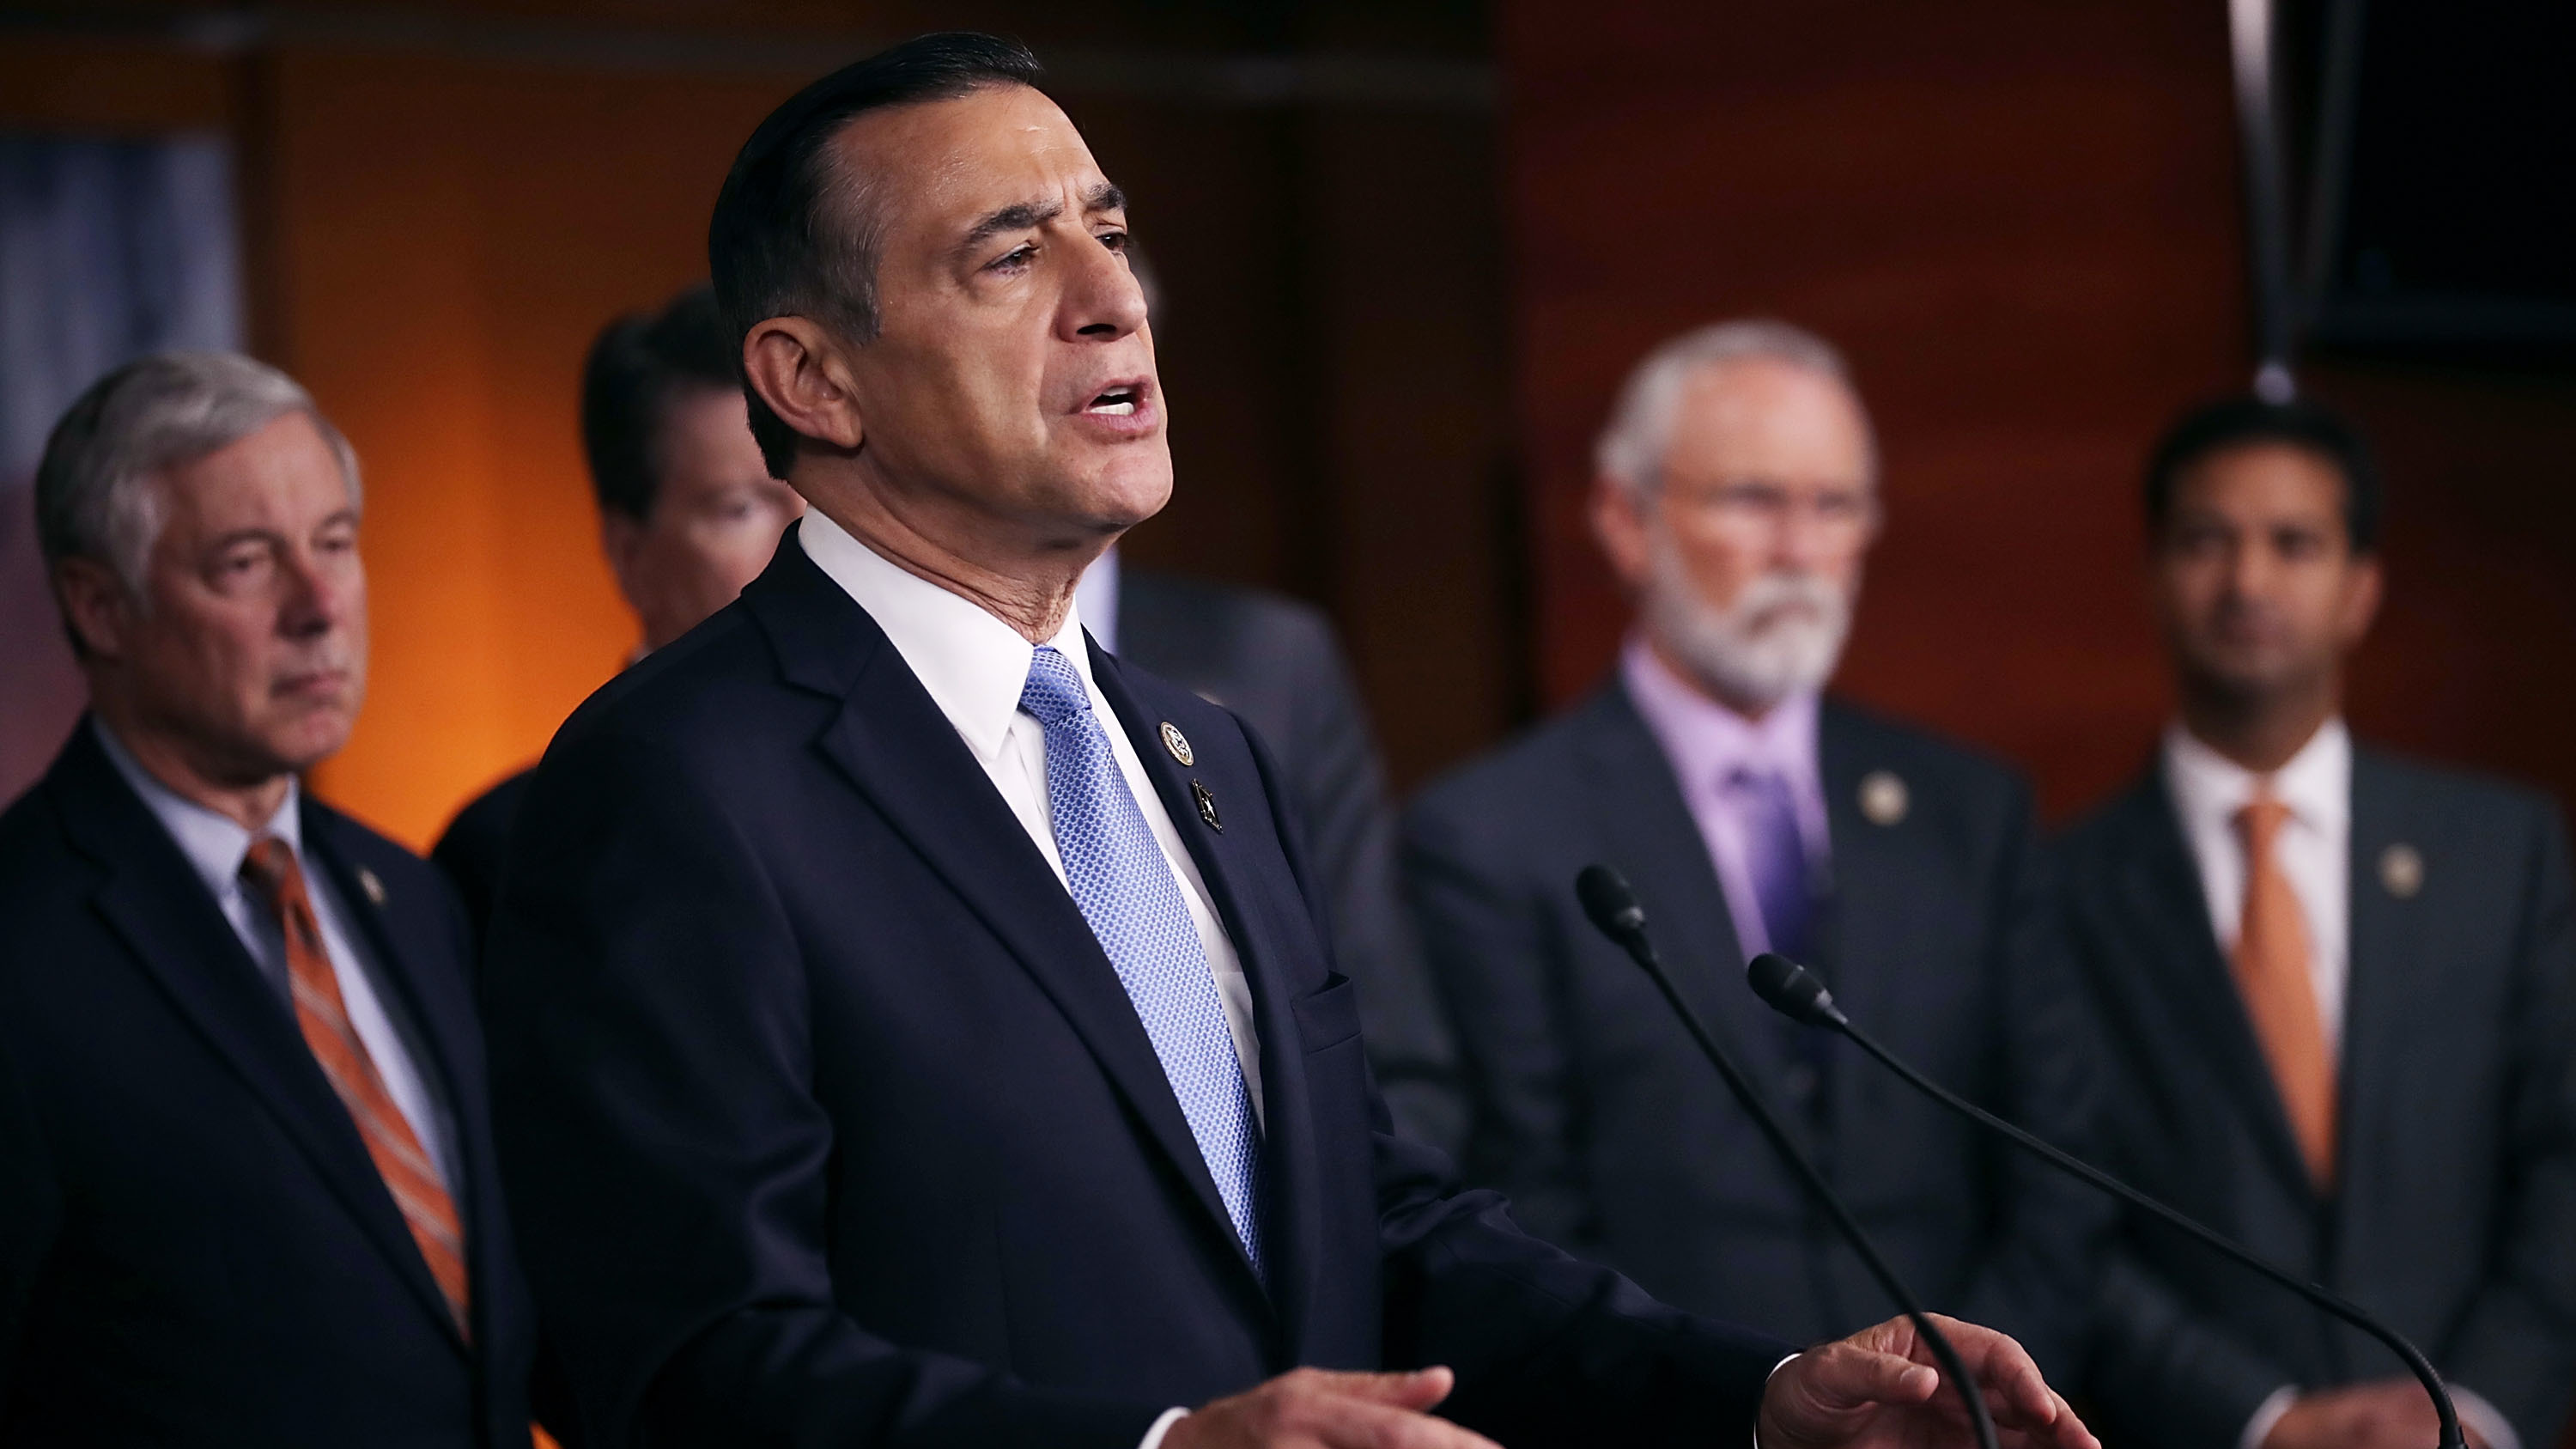 Rep. Darrell Issa To Retire, Adding To Record GOP Exodus From Congress